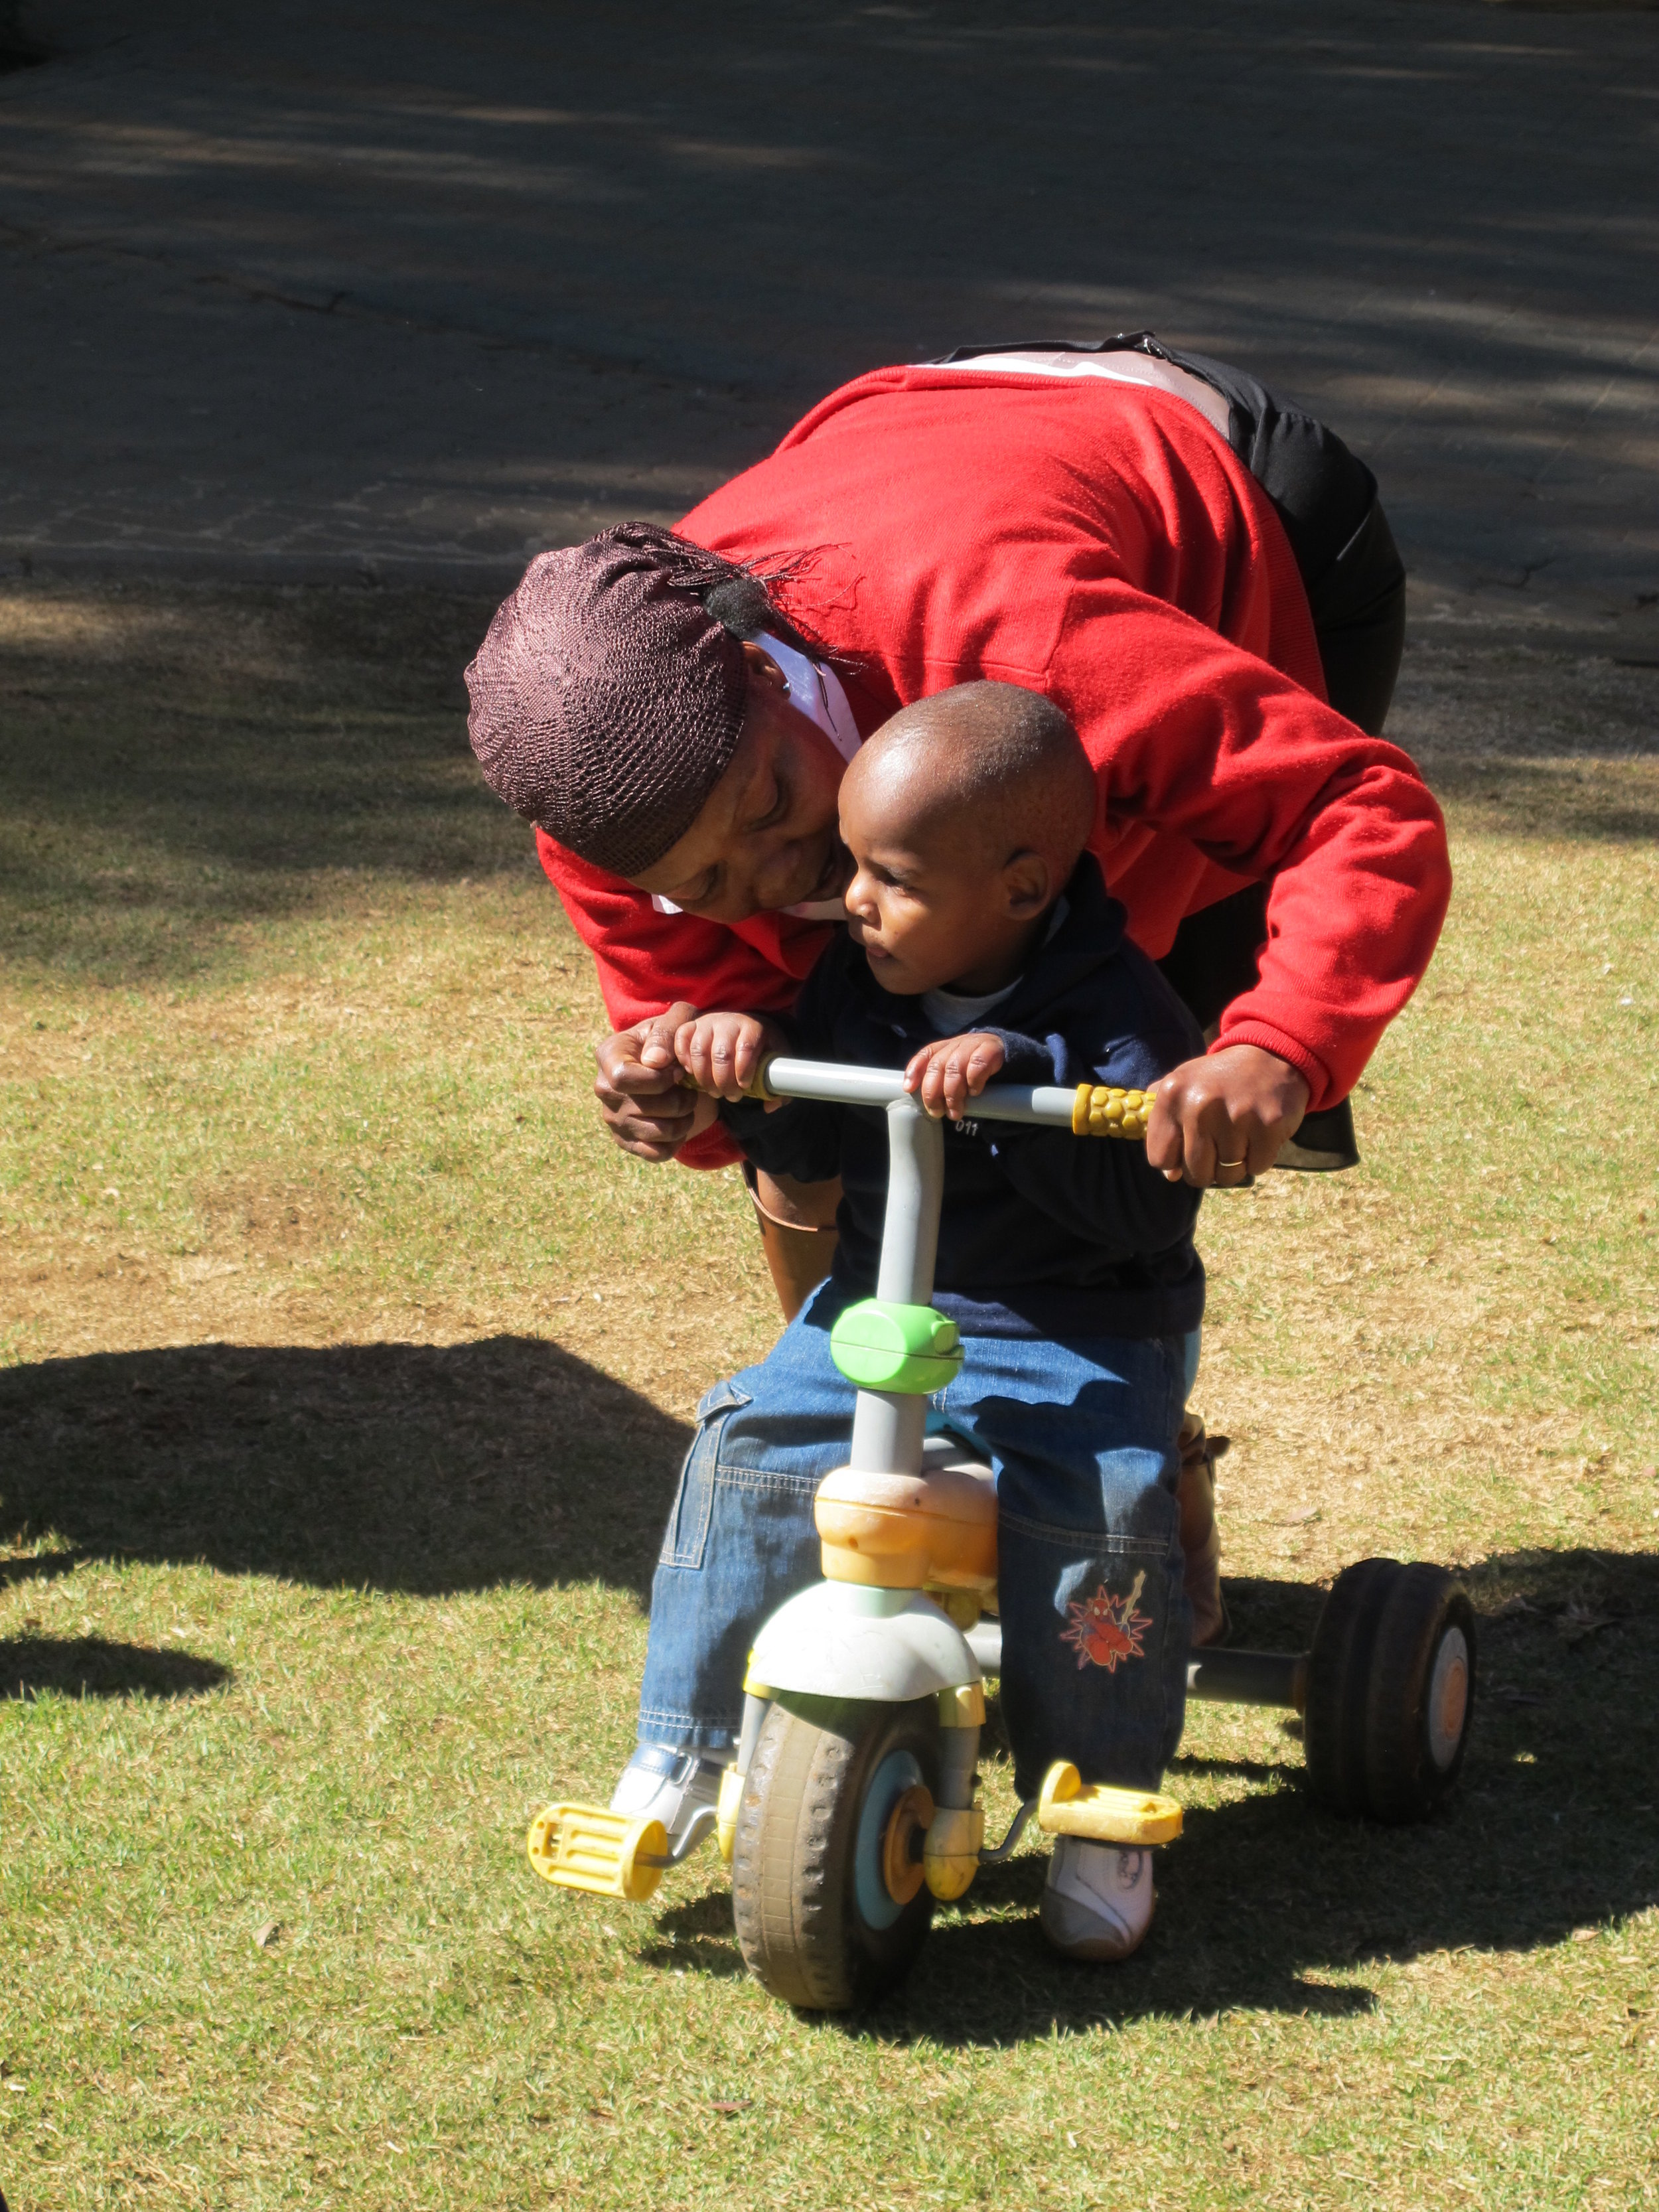 JCW Staff and Child, South Africa 2012